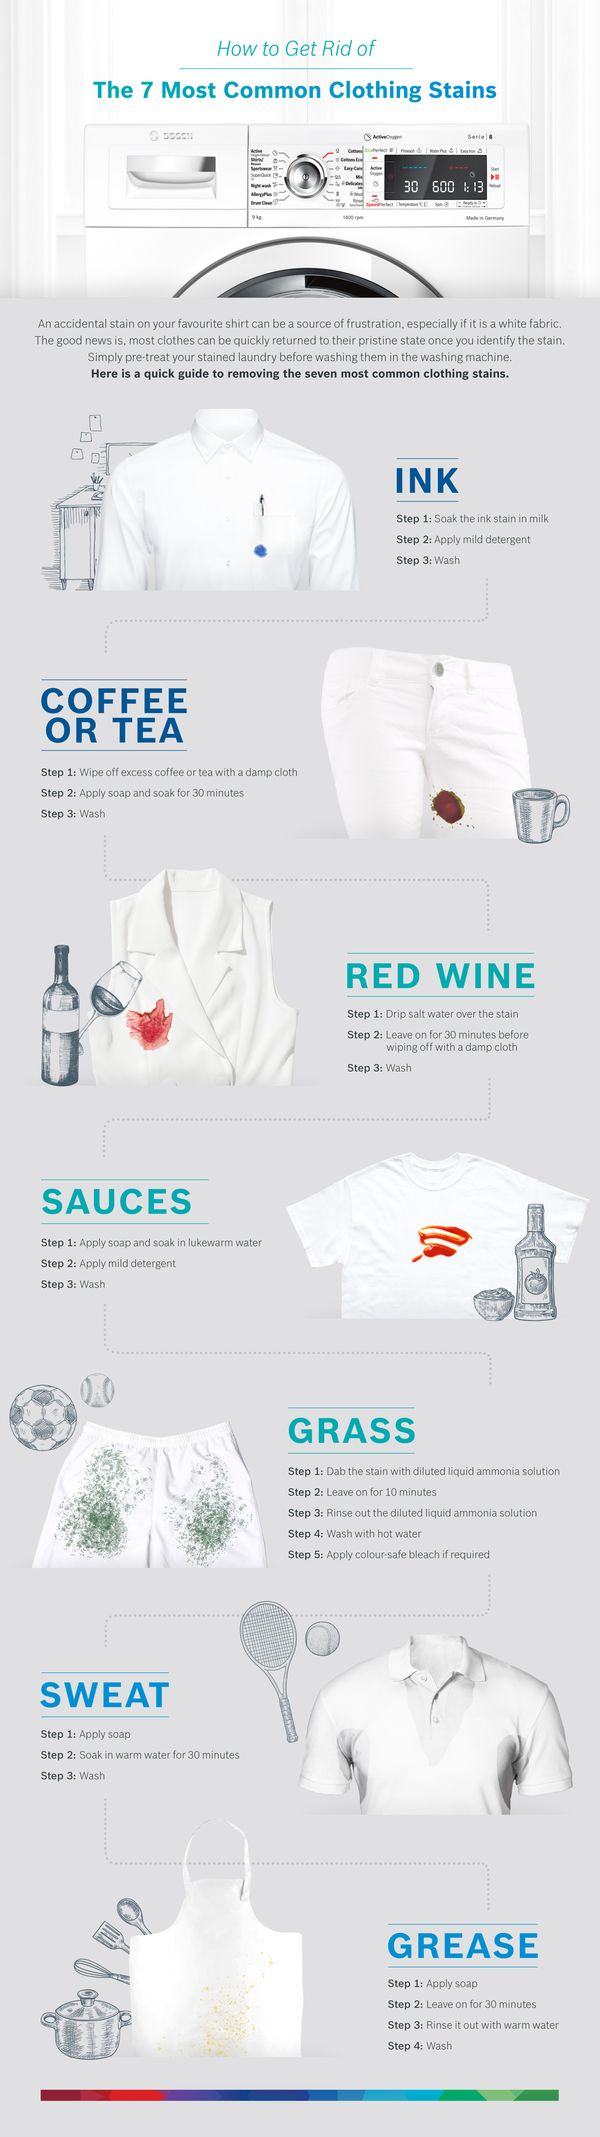 How To Get Rid Of The 7 Most Common Clothing Stains Bosch Home Liances